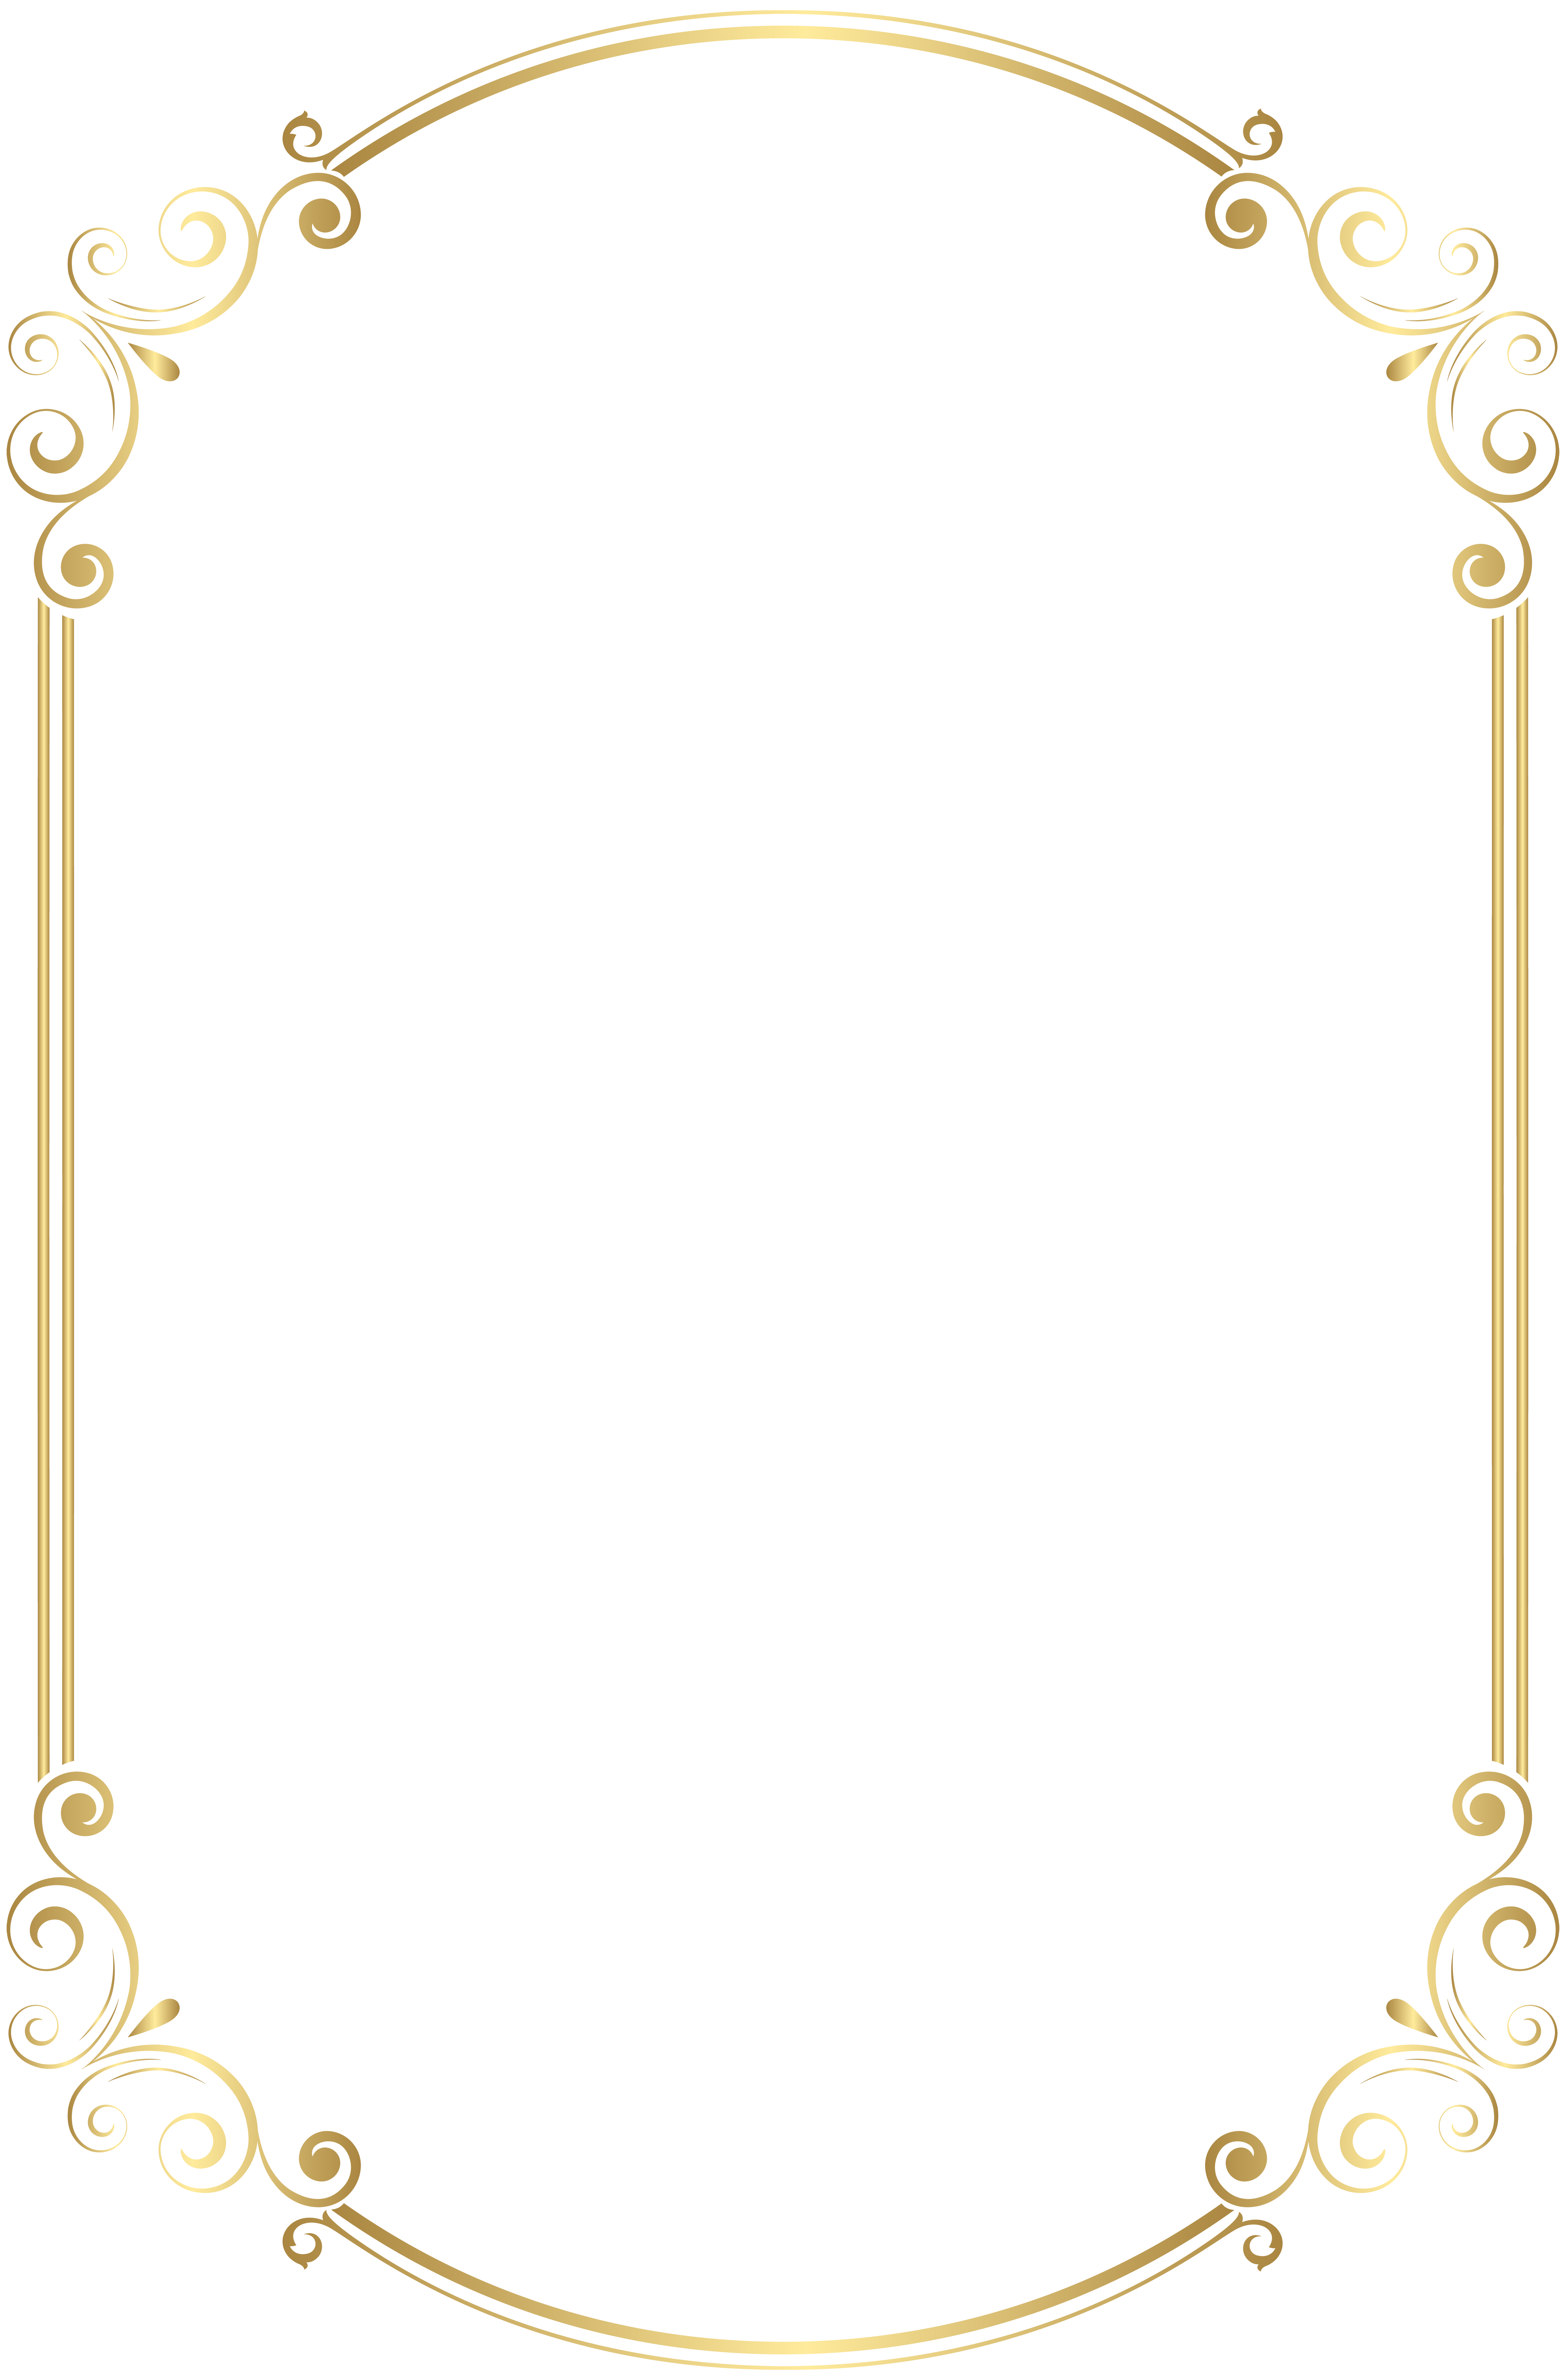 Frame Border Clip Art Png Gold Image Gallery Yopriceville High Quality Images And Transparent Png Free Frame Border Design Clip Art Borders Free Clip Art